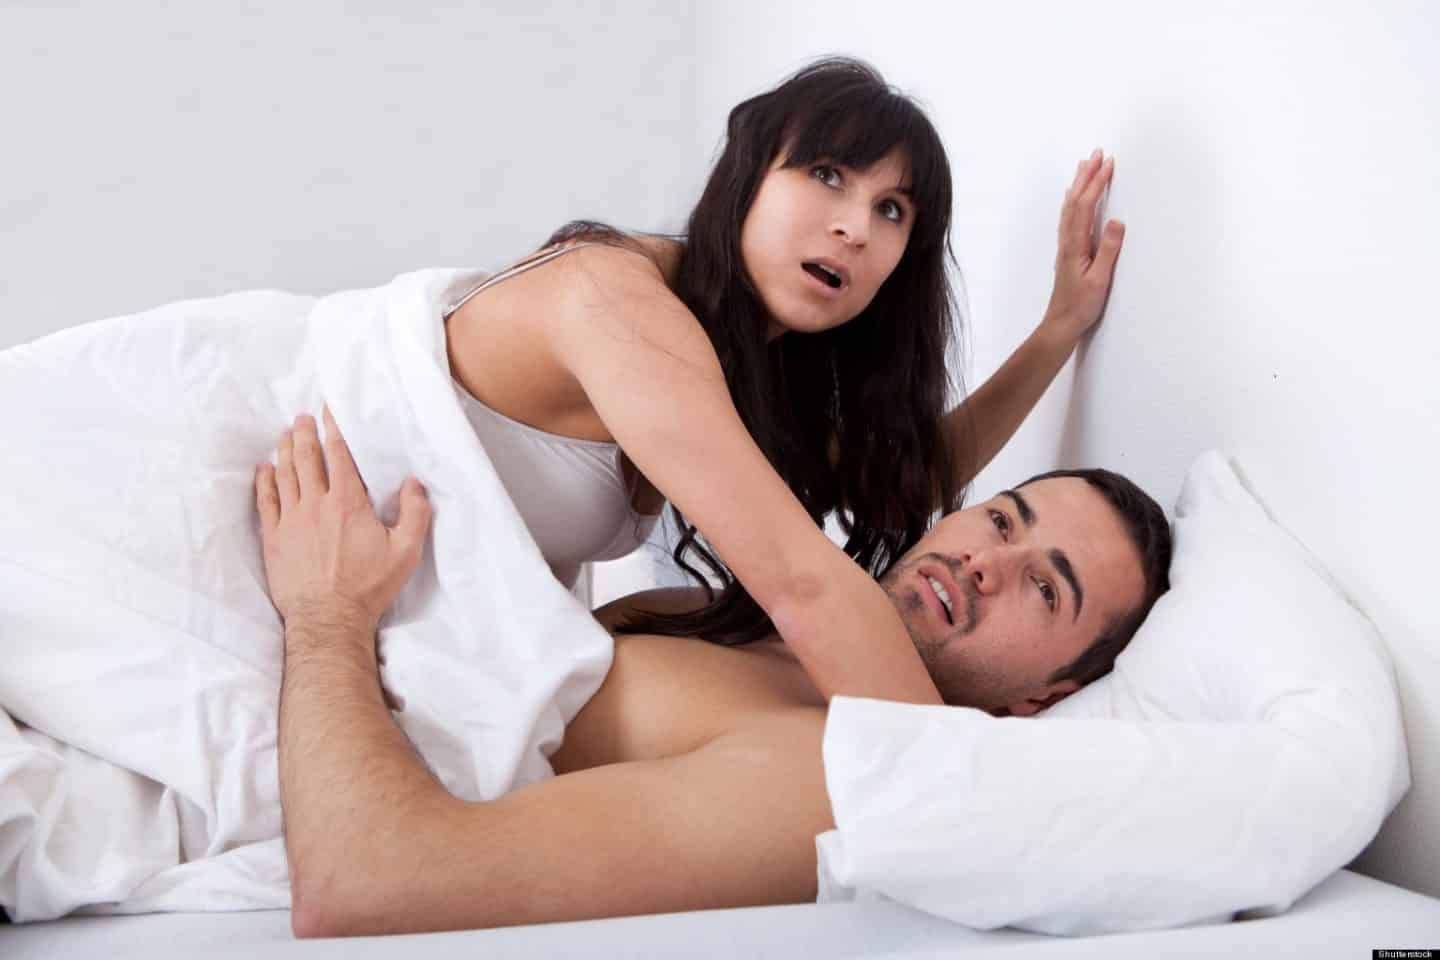 8 Sex Acts Off-Limits with Your Girlfriend